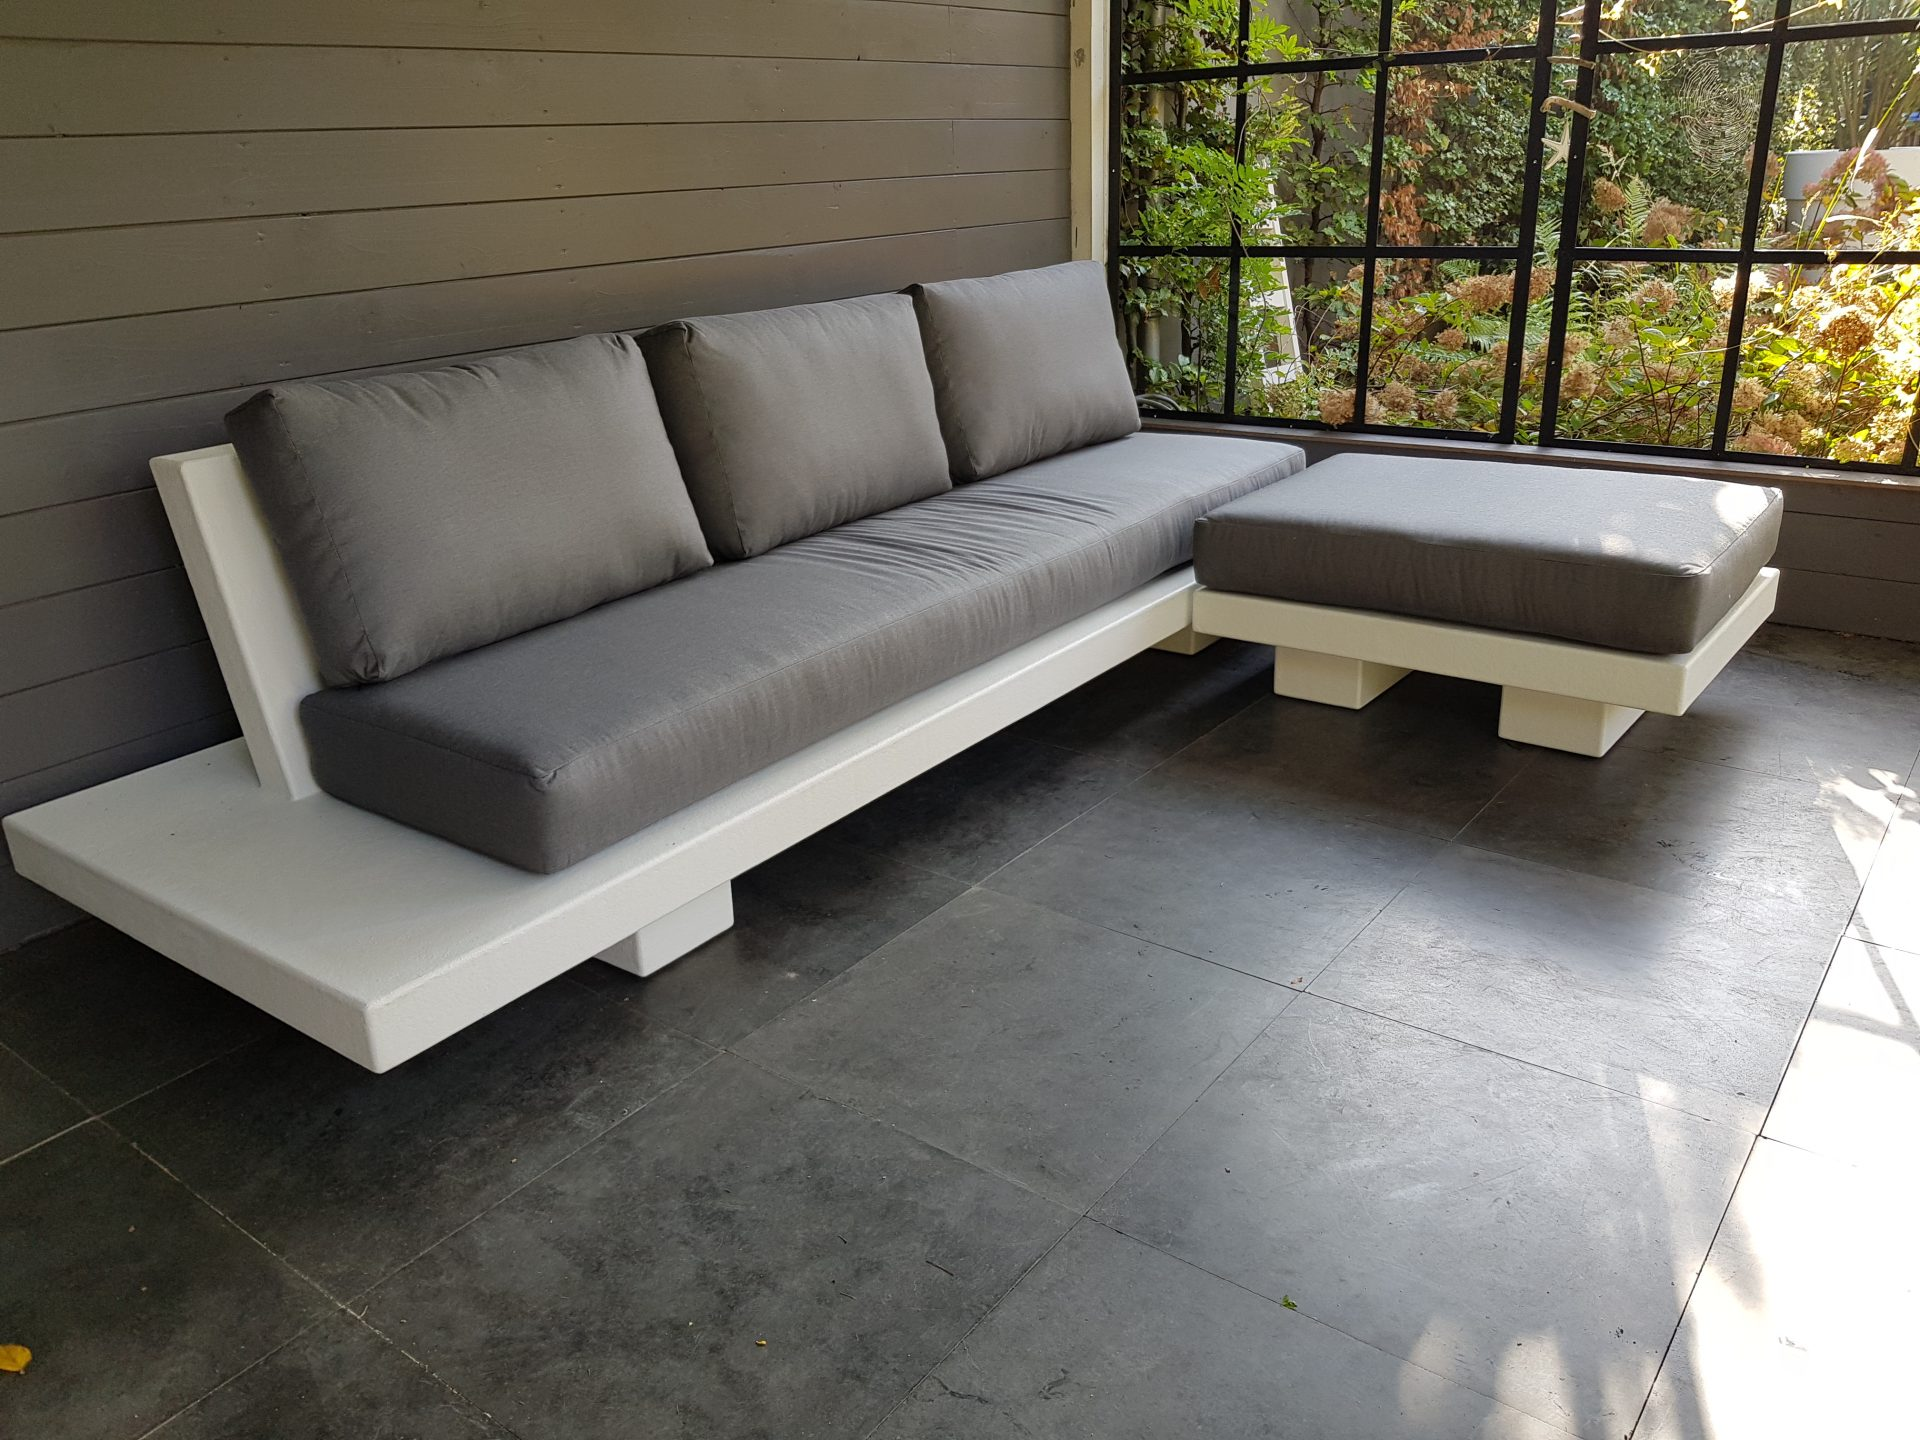 Betonlook loungeset - Base XLight - Wit